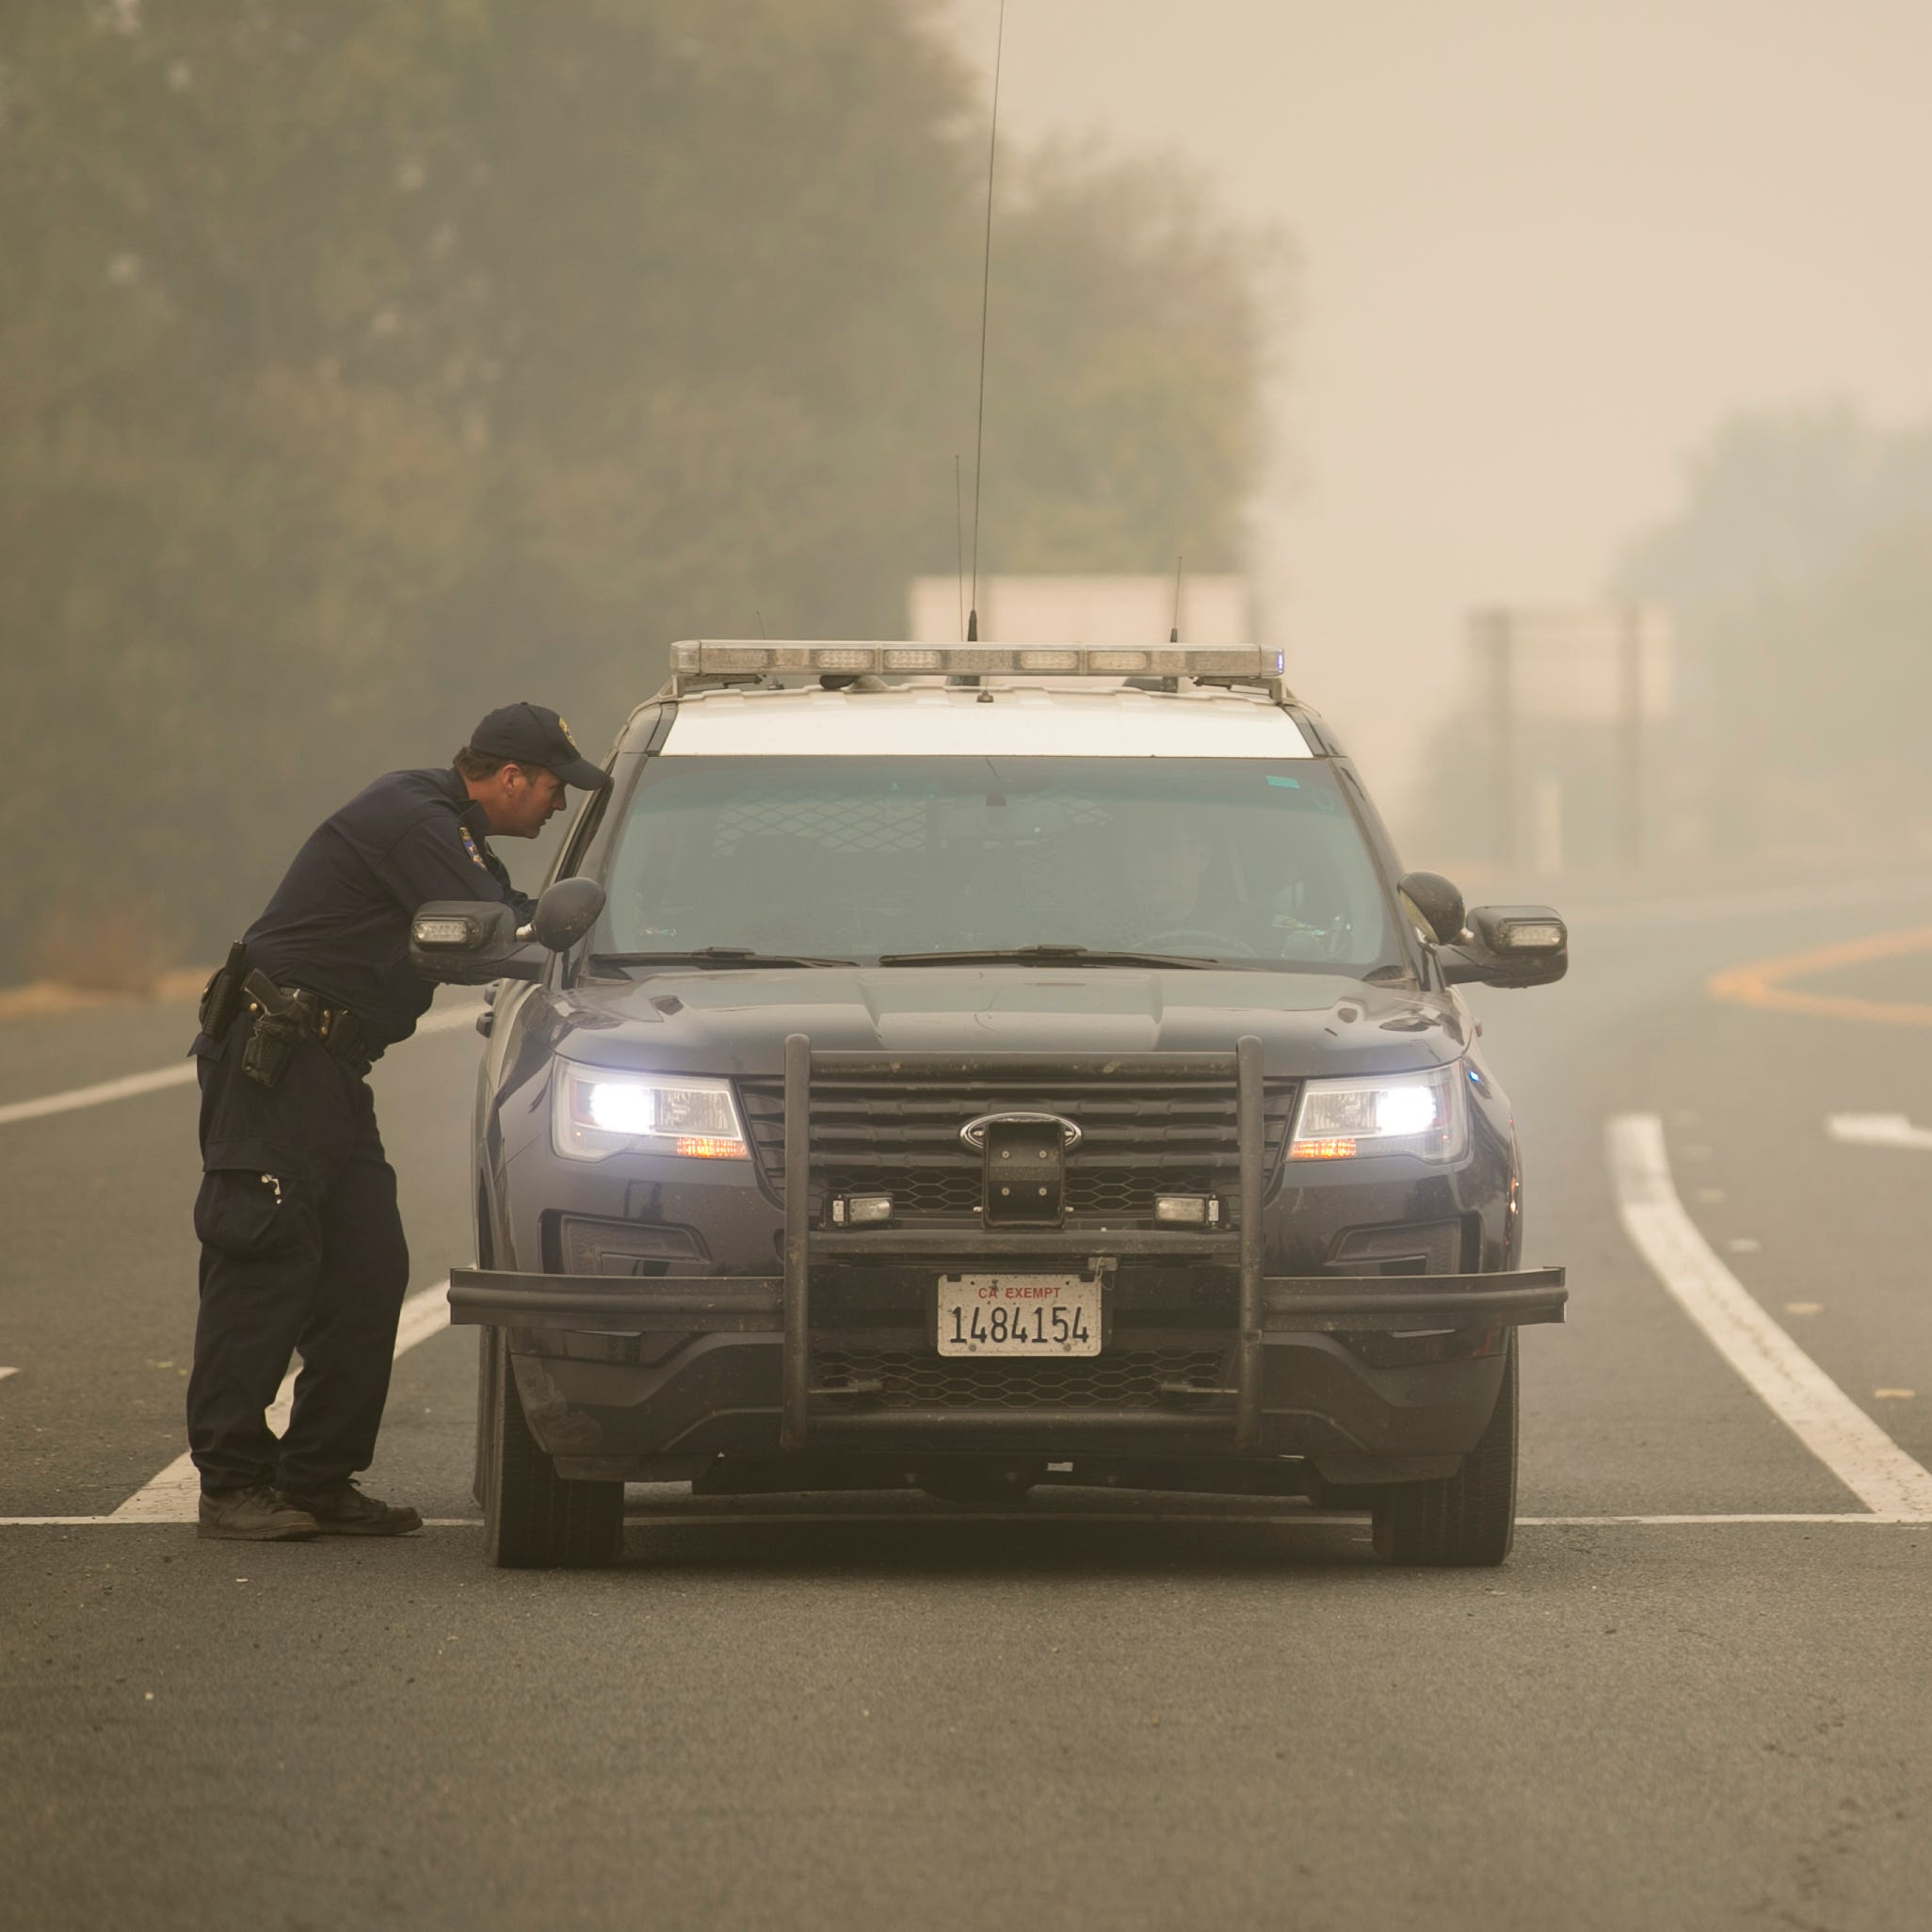 Officers shoot, kill wanted man inside Camp Fire's evacuation perimeter